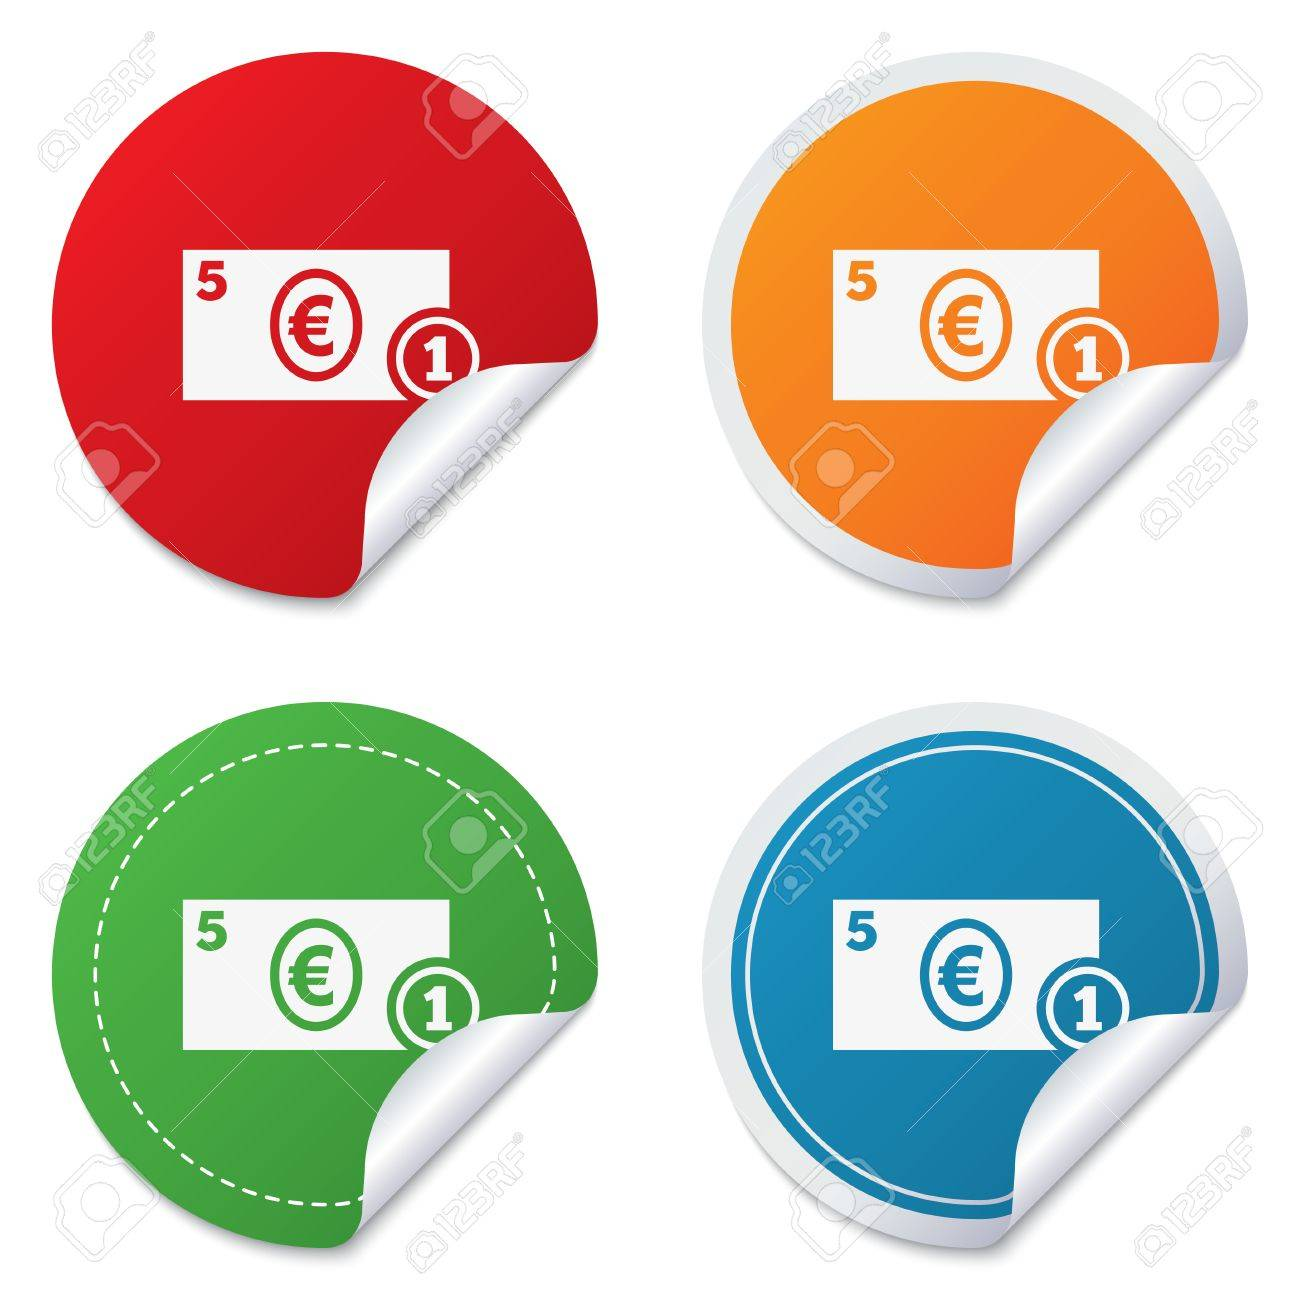 Cash sign icon euro money symbol eur coin and paper money cash sign icon euro money symbol eur coin and paper money round stickers buycottarizona Gallery